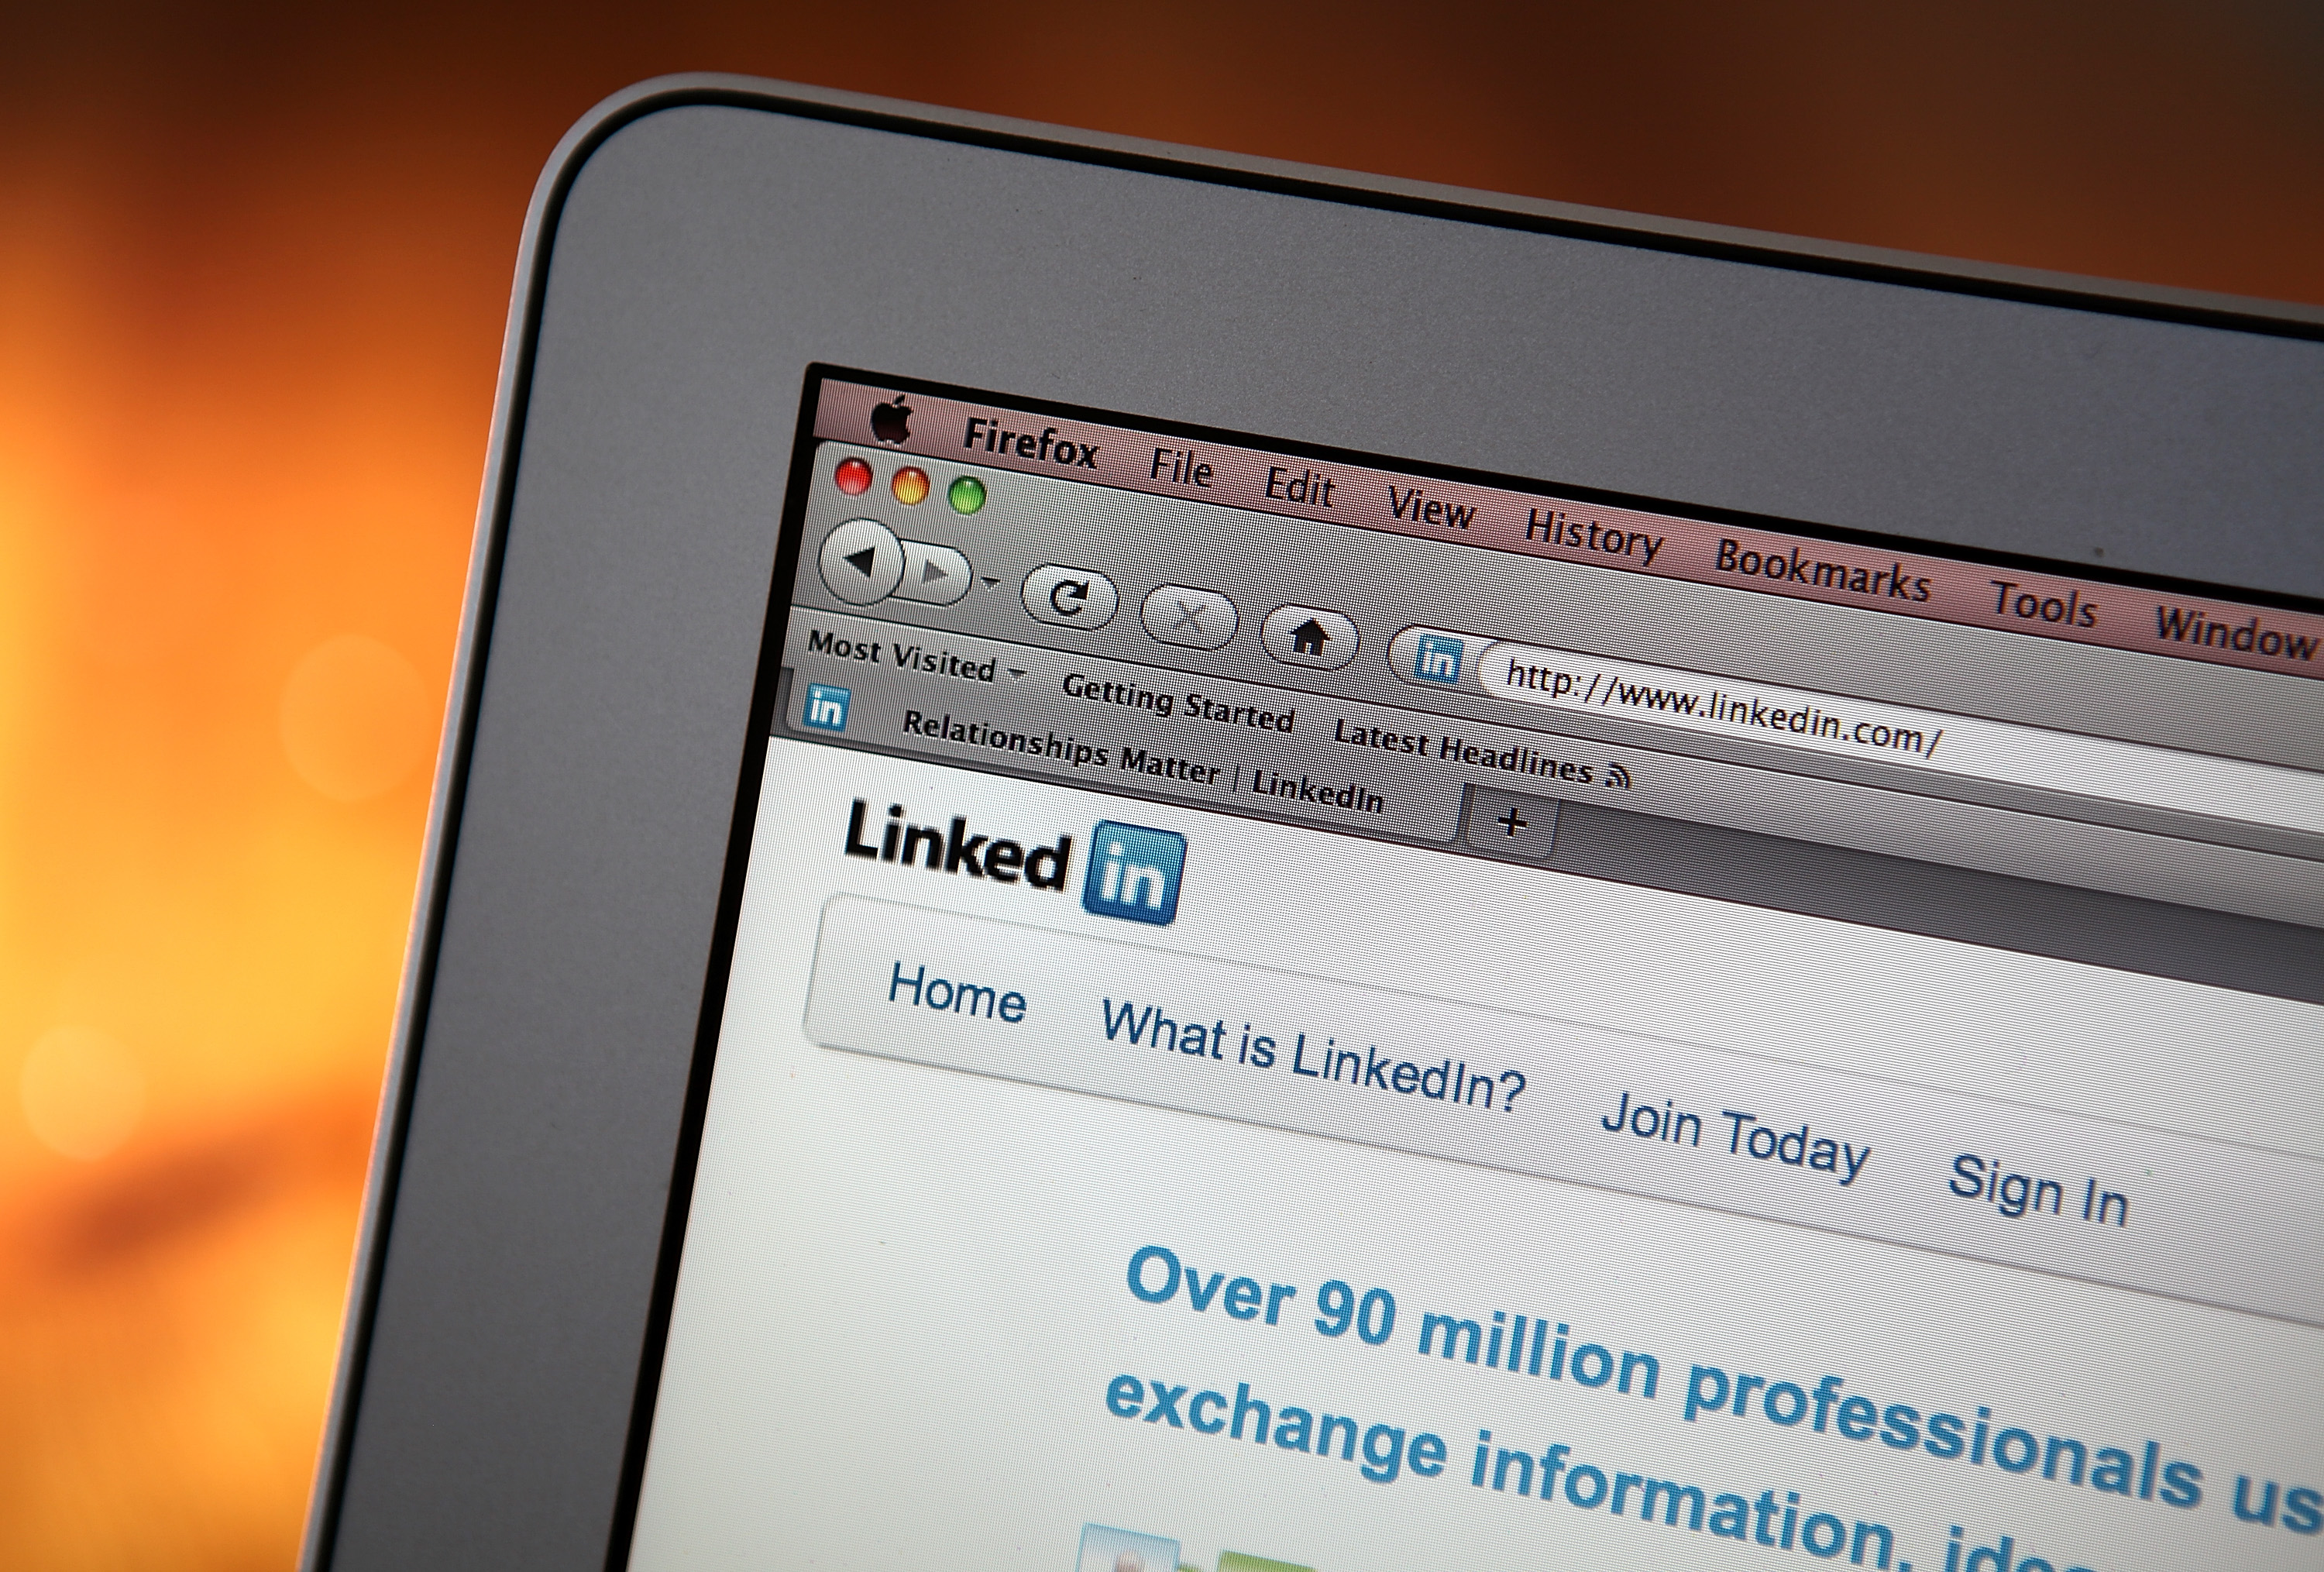 LinkedIn makes its biggest acquisition by paying $120m for job matching service Bright